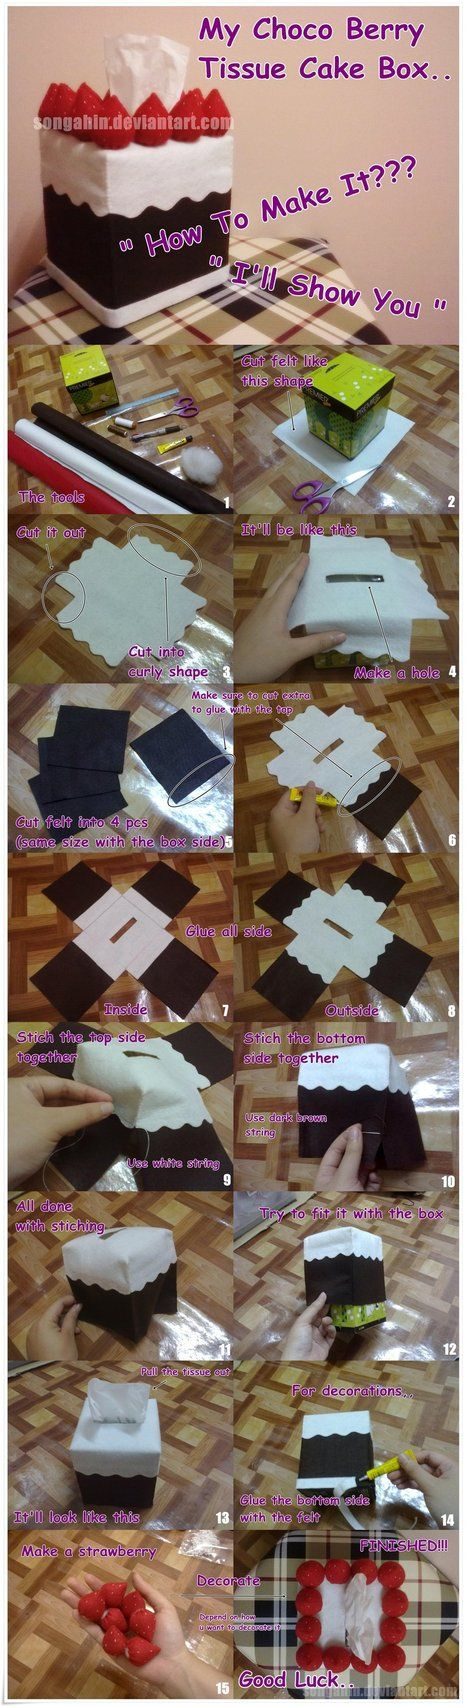 Choco Berry Tissue Bx Tutorial by SongAhIn on deviantART